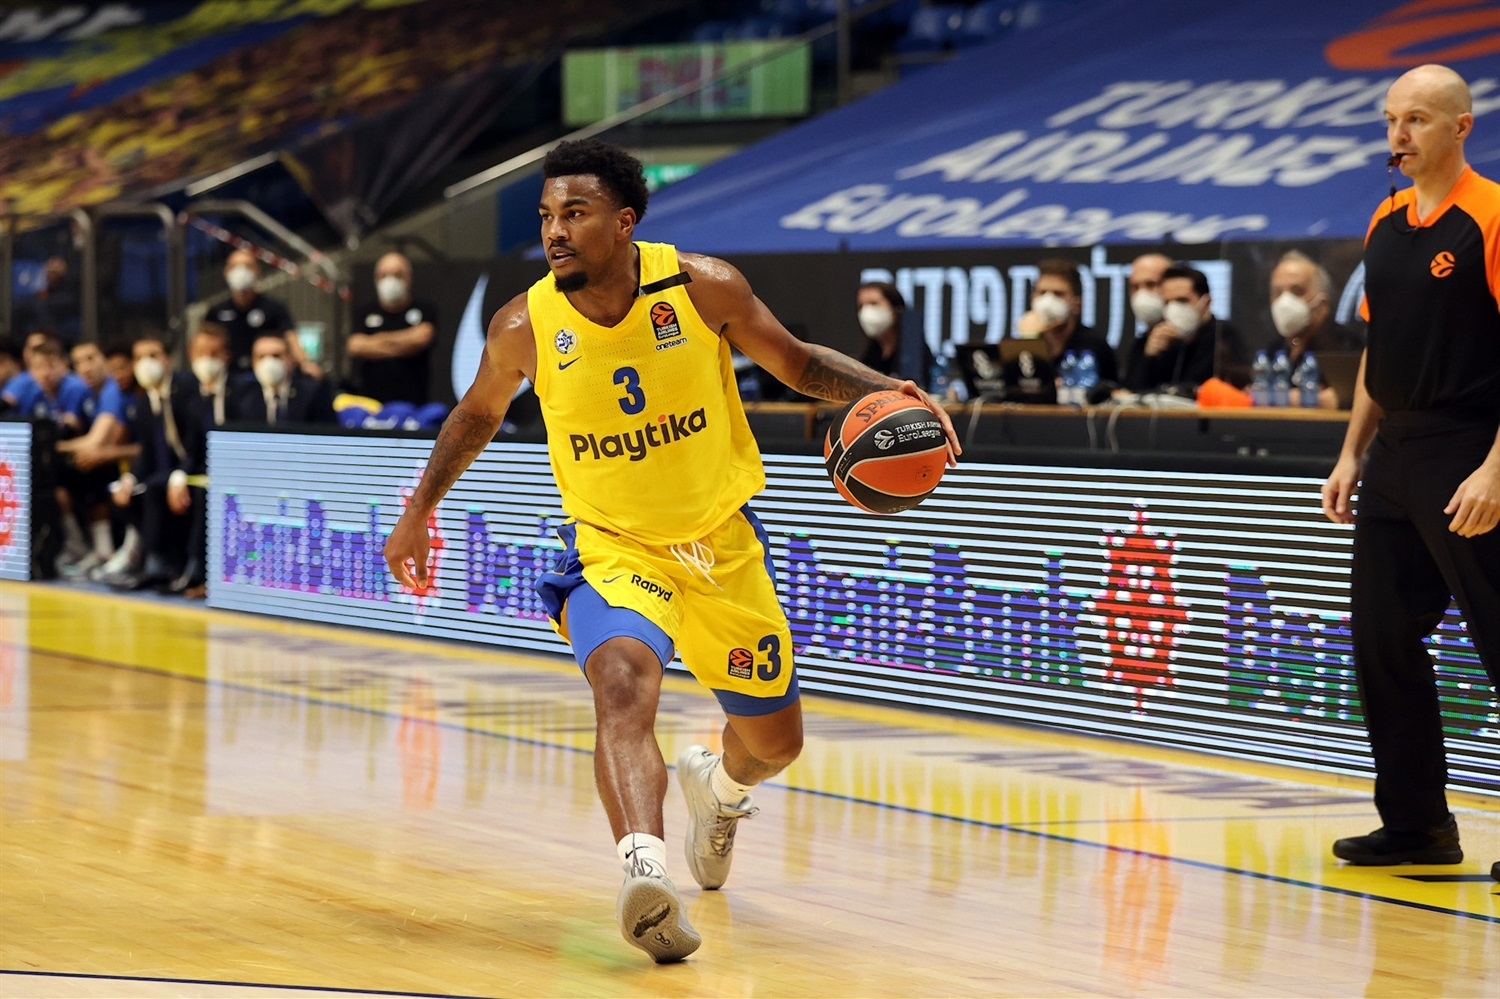 Chris Jones - Maccabi Playtika Tel Aviv - EB20